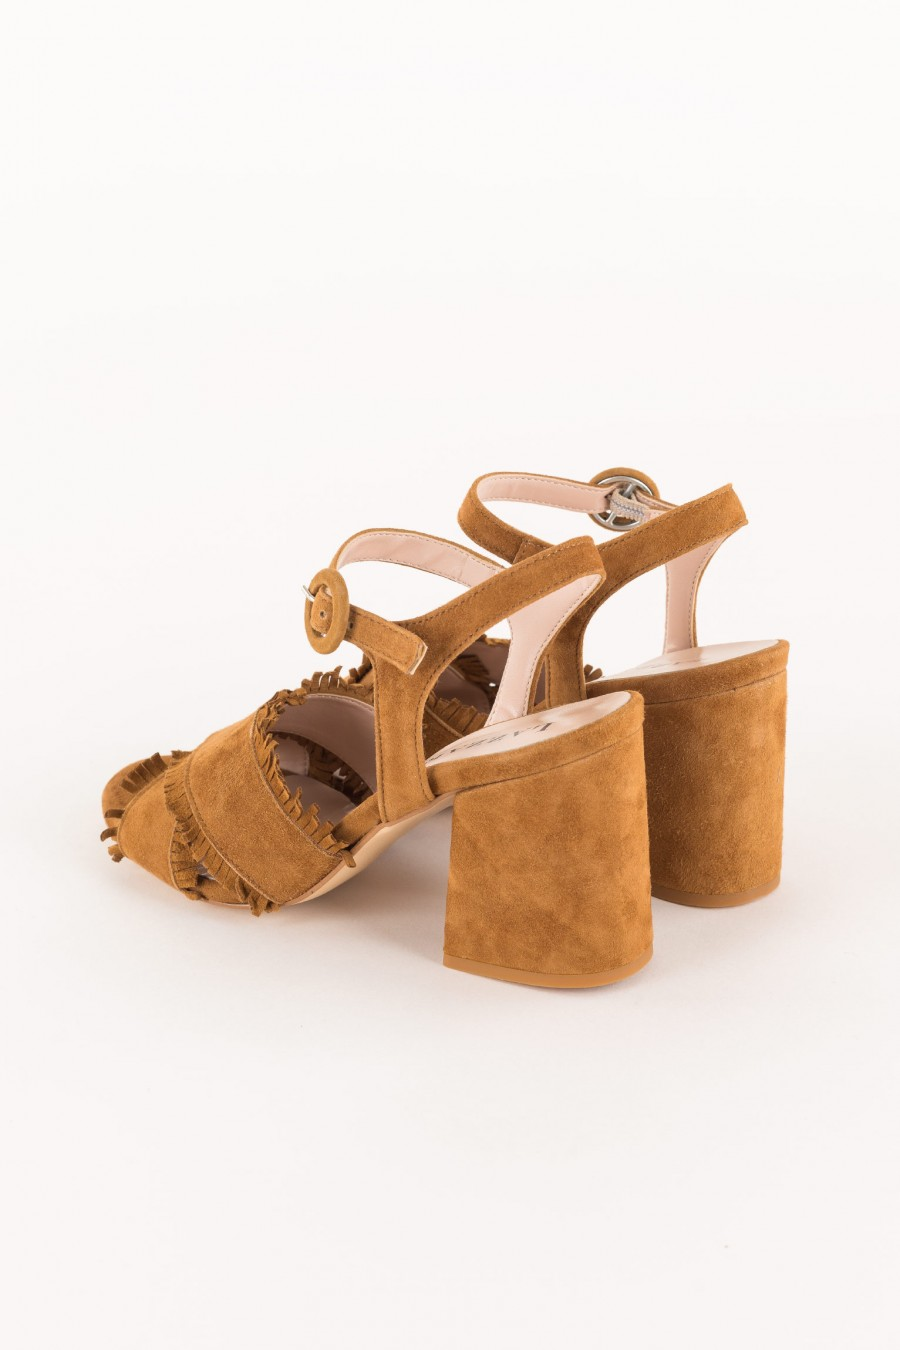 leather-colored sandal with cross strap and fringes